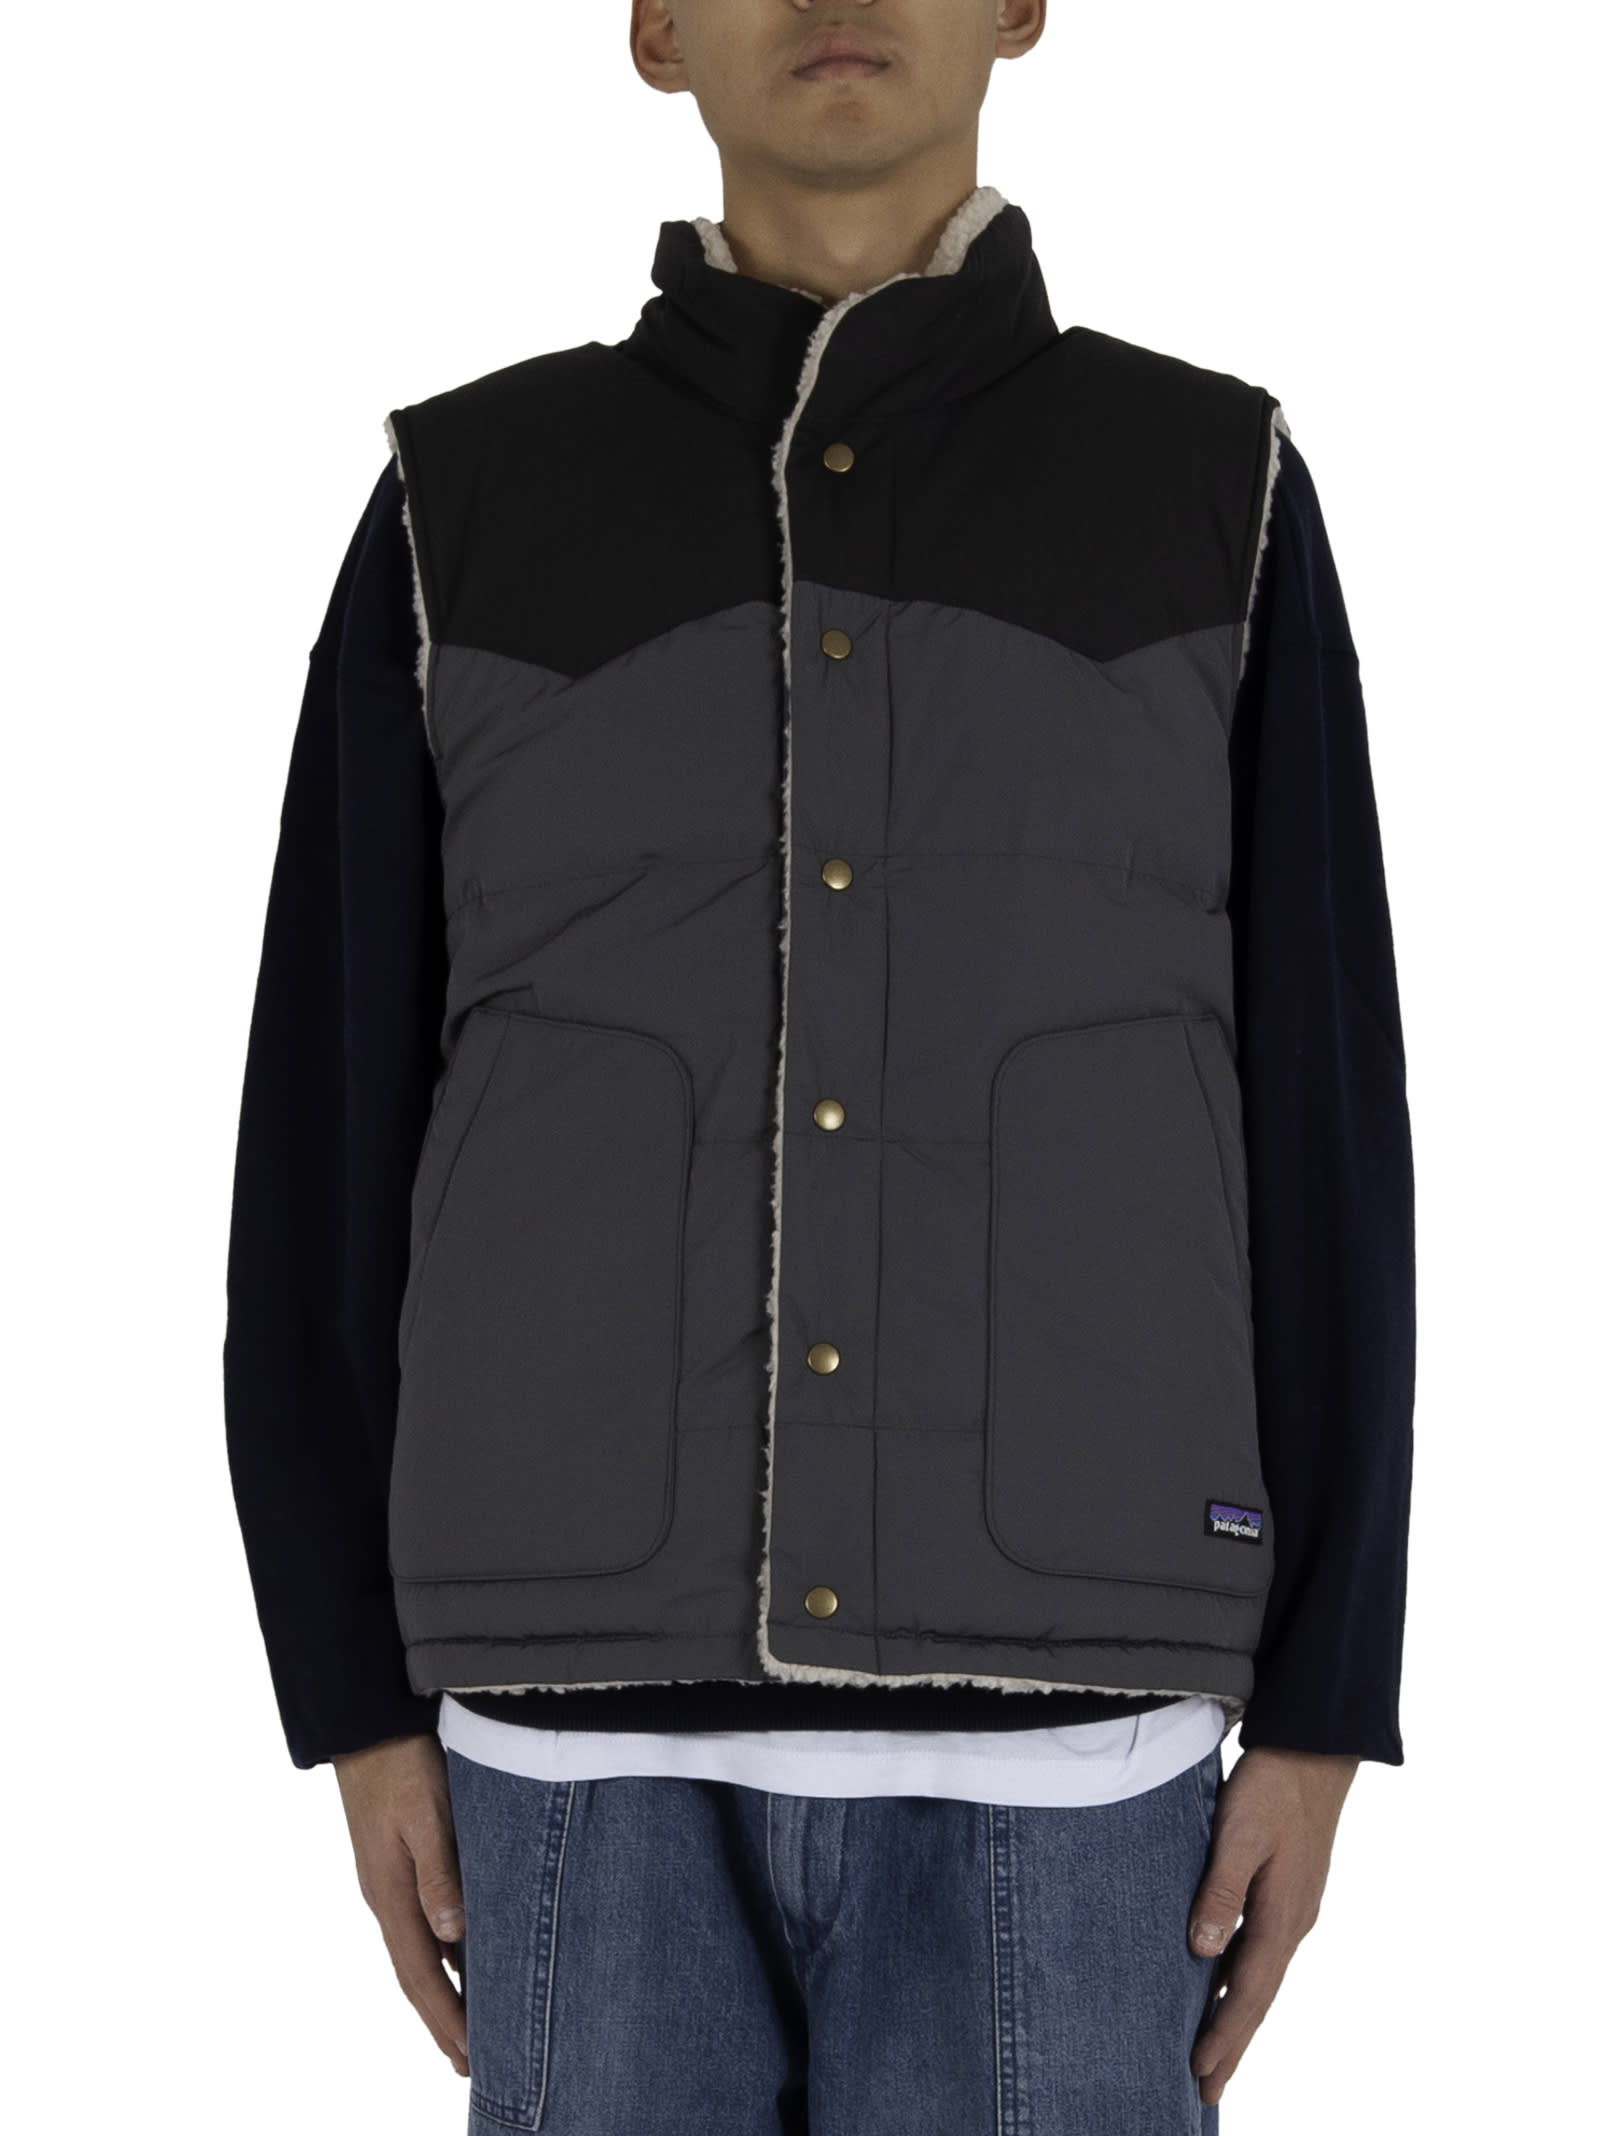 Button closure; - One side in nylon with flush side pockets with logoed insert; - One side in fleece with logoed insert applied on the chest and pockets with zipper closure. - Composition: 100% Polyester (70% recycled) - Color: Cream/Black